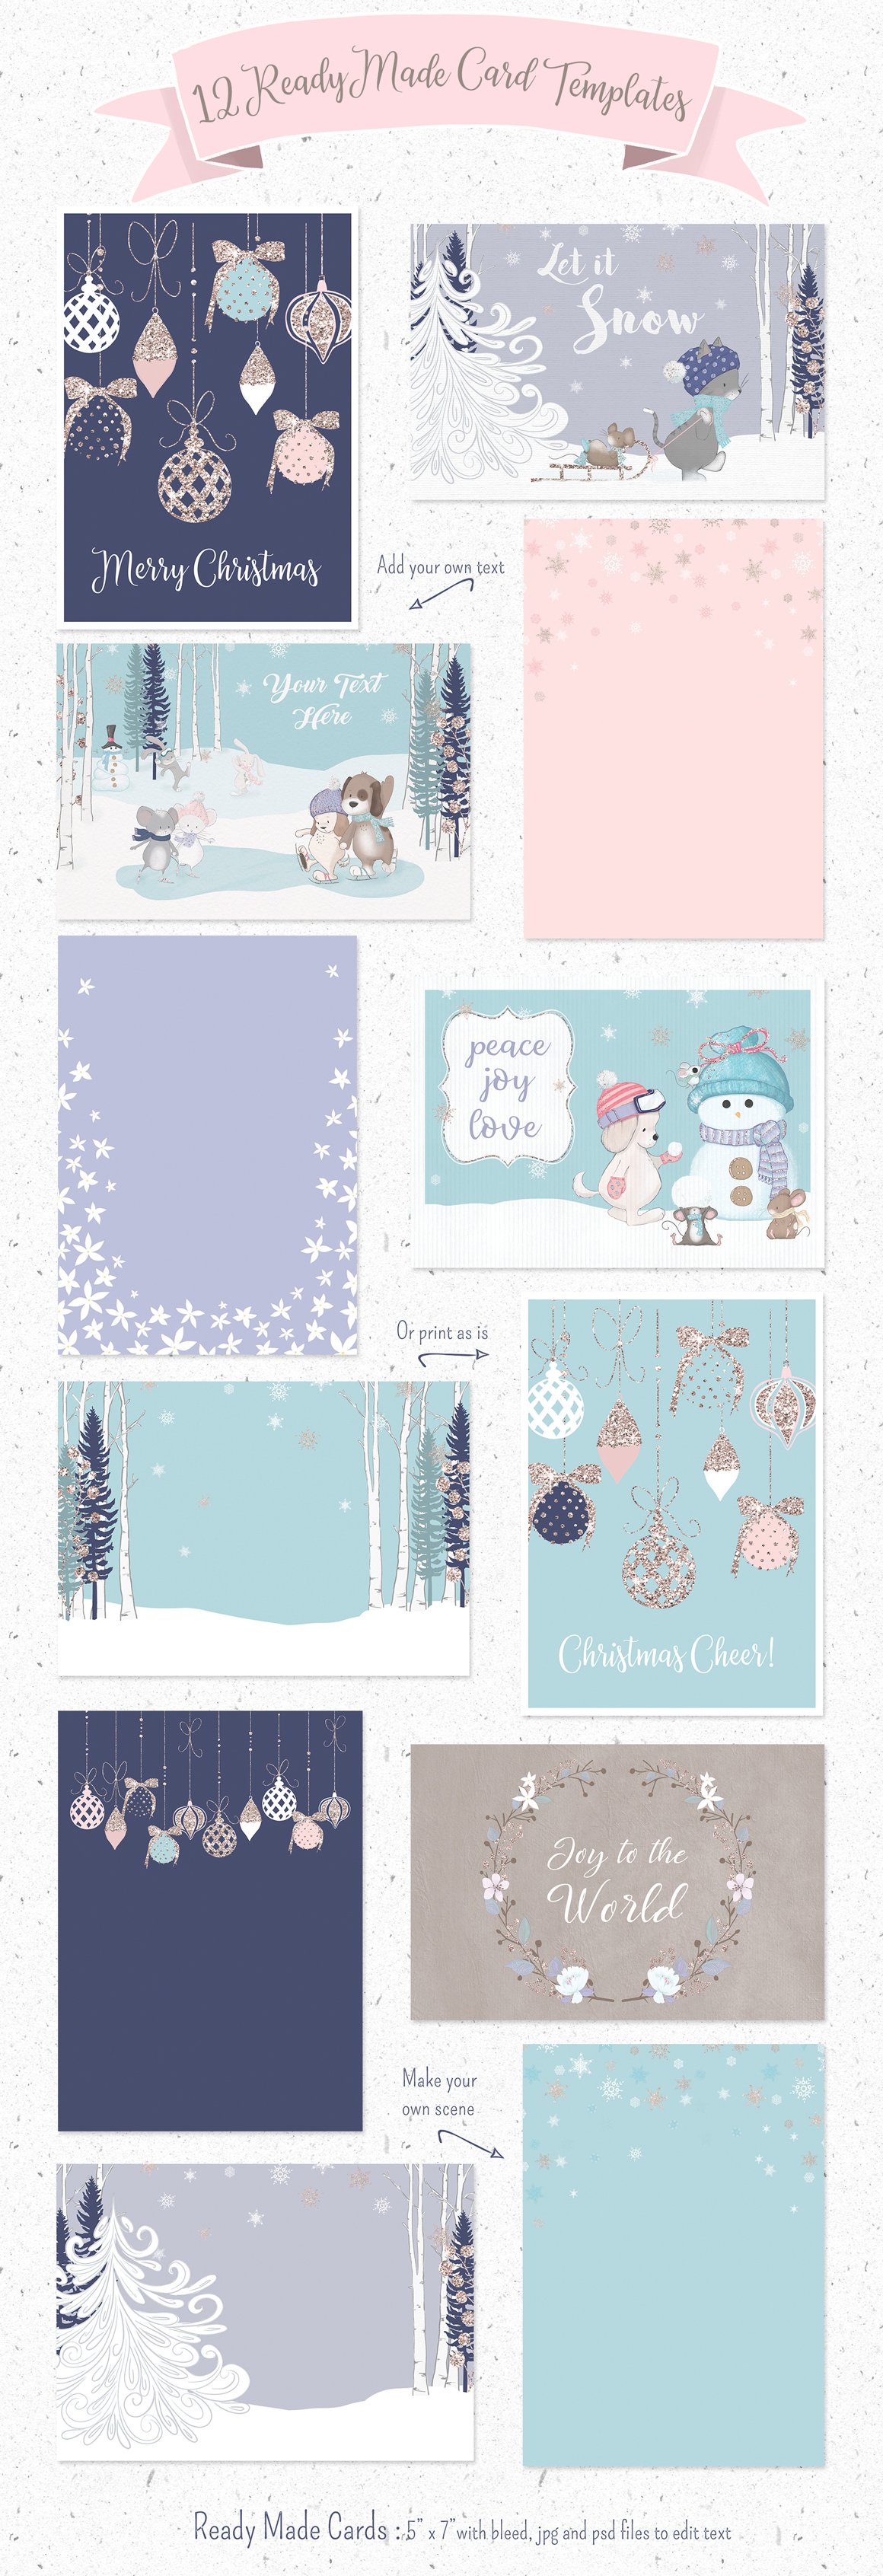 BUNDLE PACK OF 24 CHRISTMAS CARDS BEST QUALITY 50p PER CARD MIXED